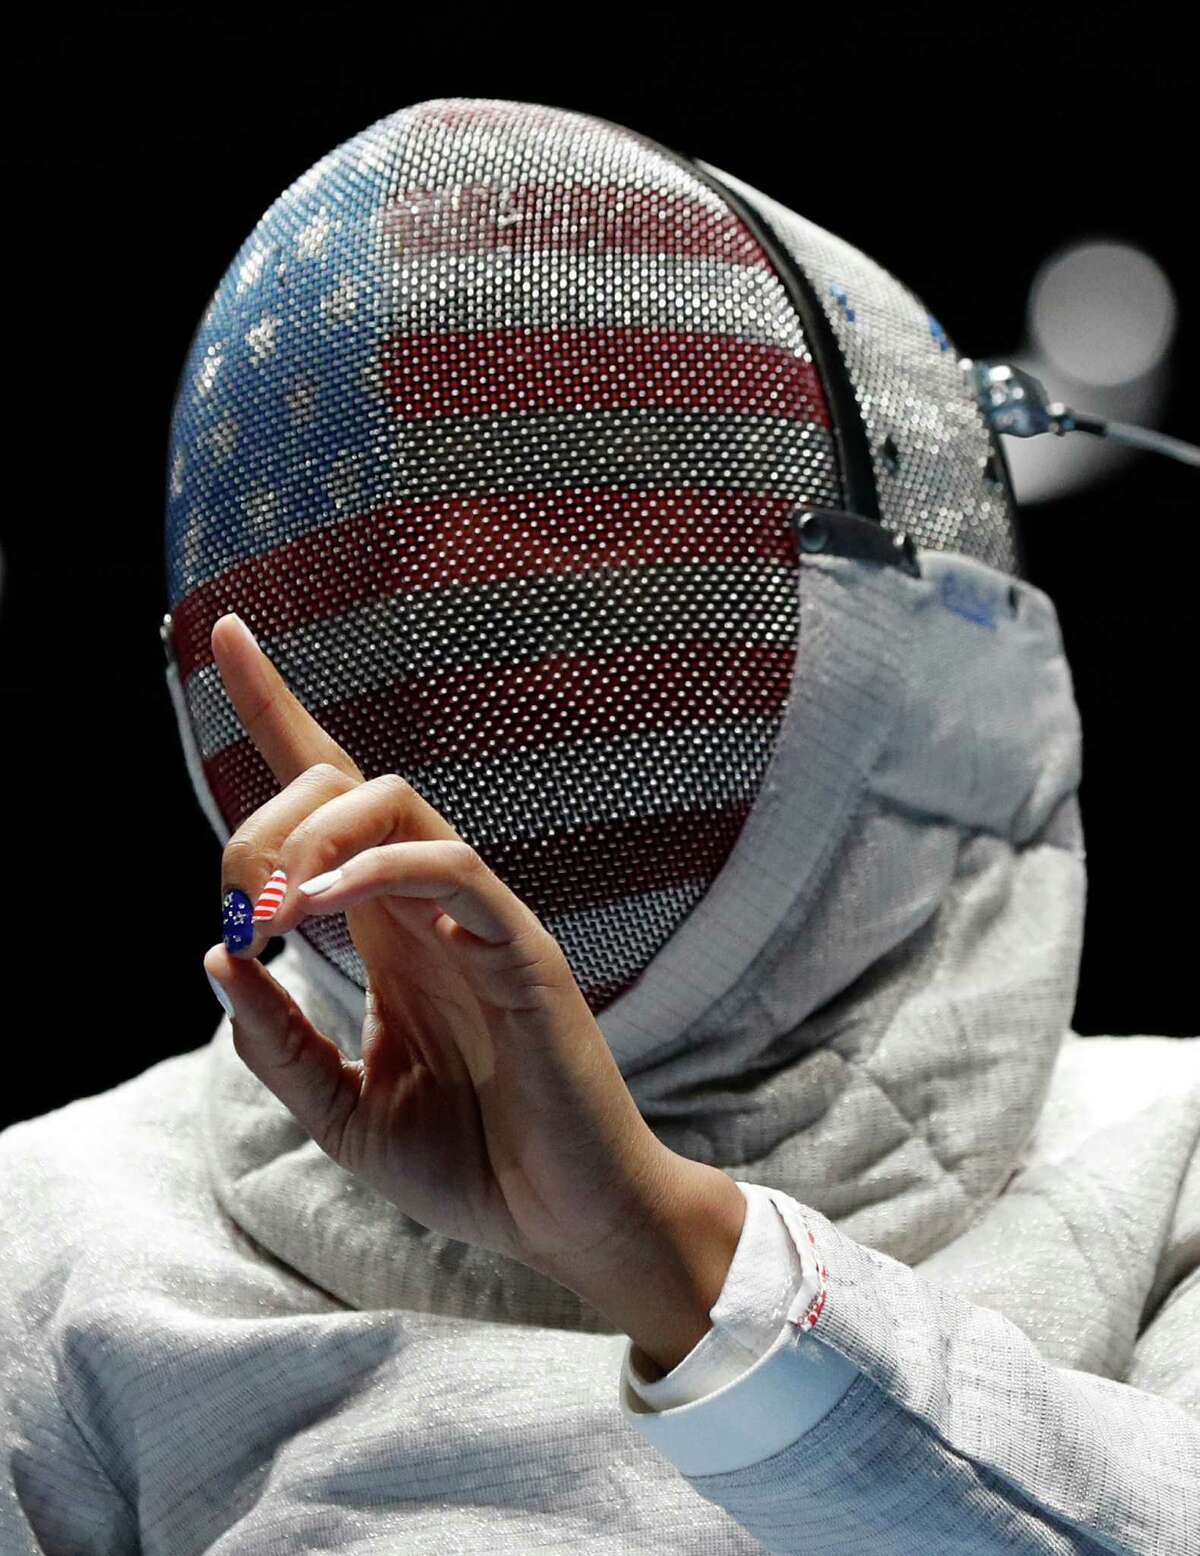 Ubrihaj Muhammad from United States, prepare for match against Olena Kravatska from Ukraine, competes in the women's saber individual fencing event at the 2016 Summer Olympics in Rio de Janeiro, Brazil, Monday, Aug. 8, 2016.